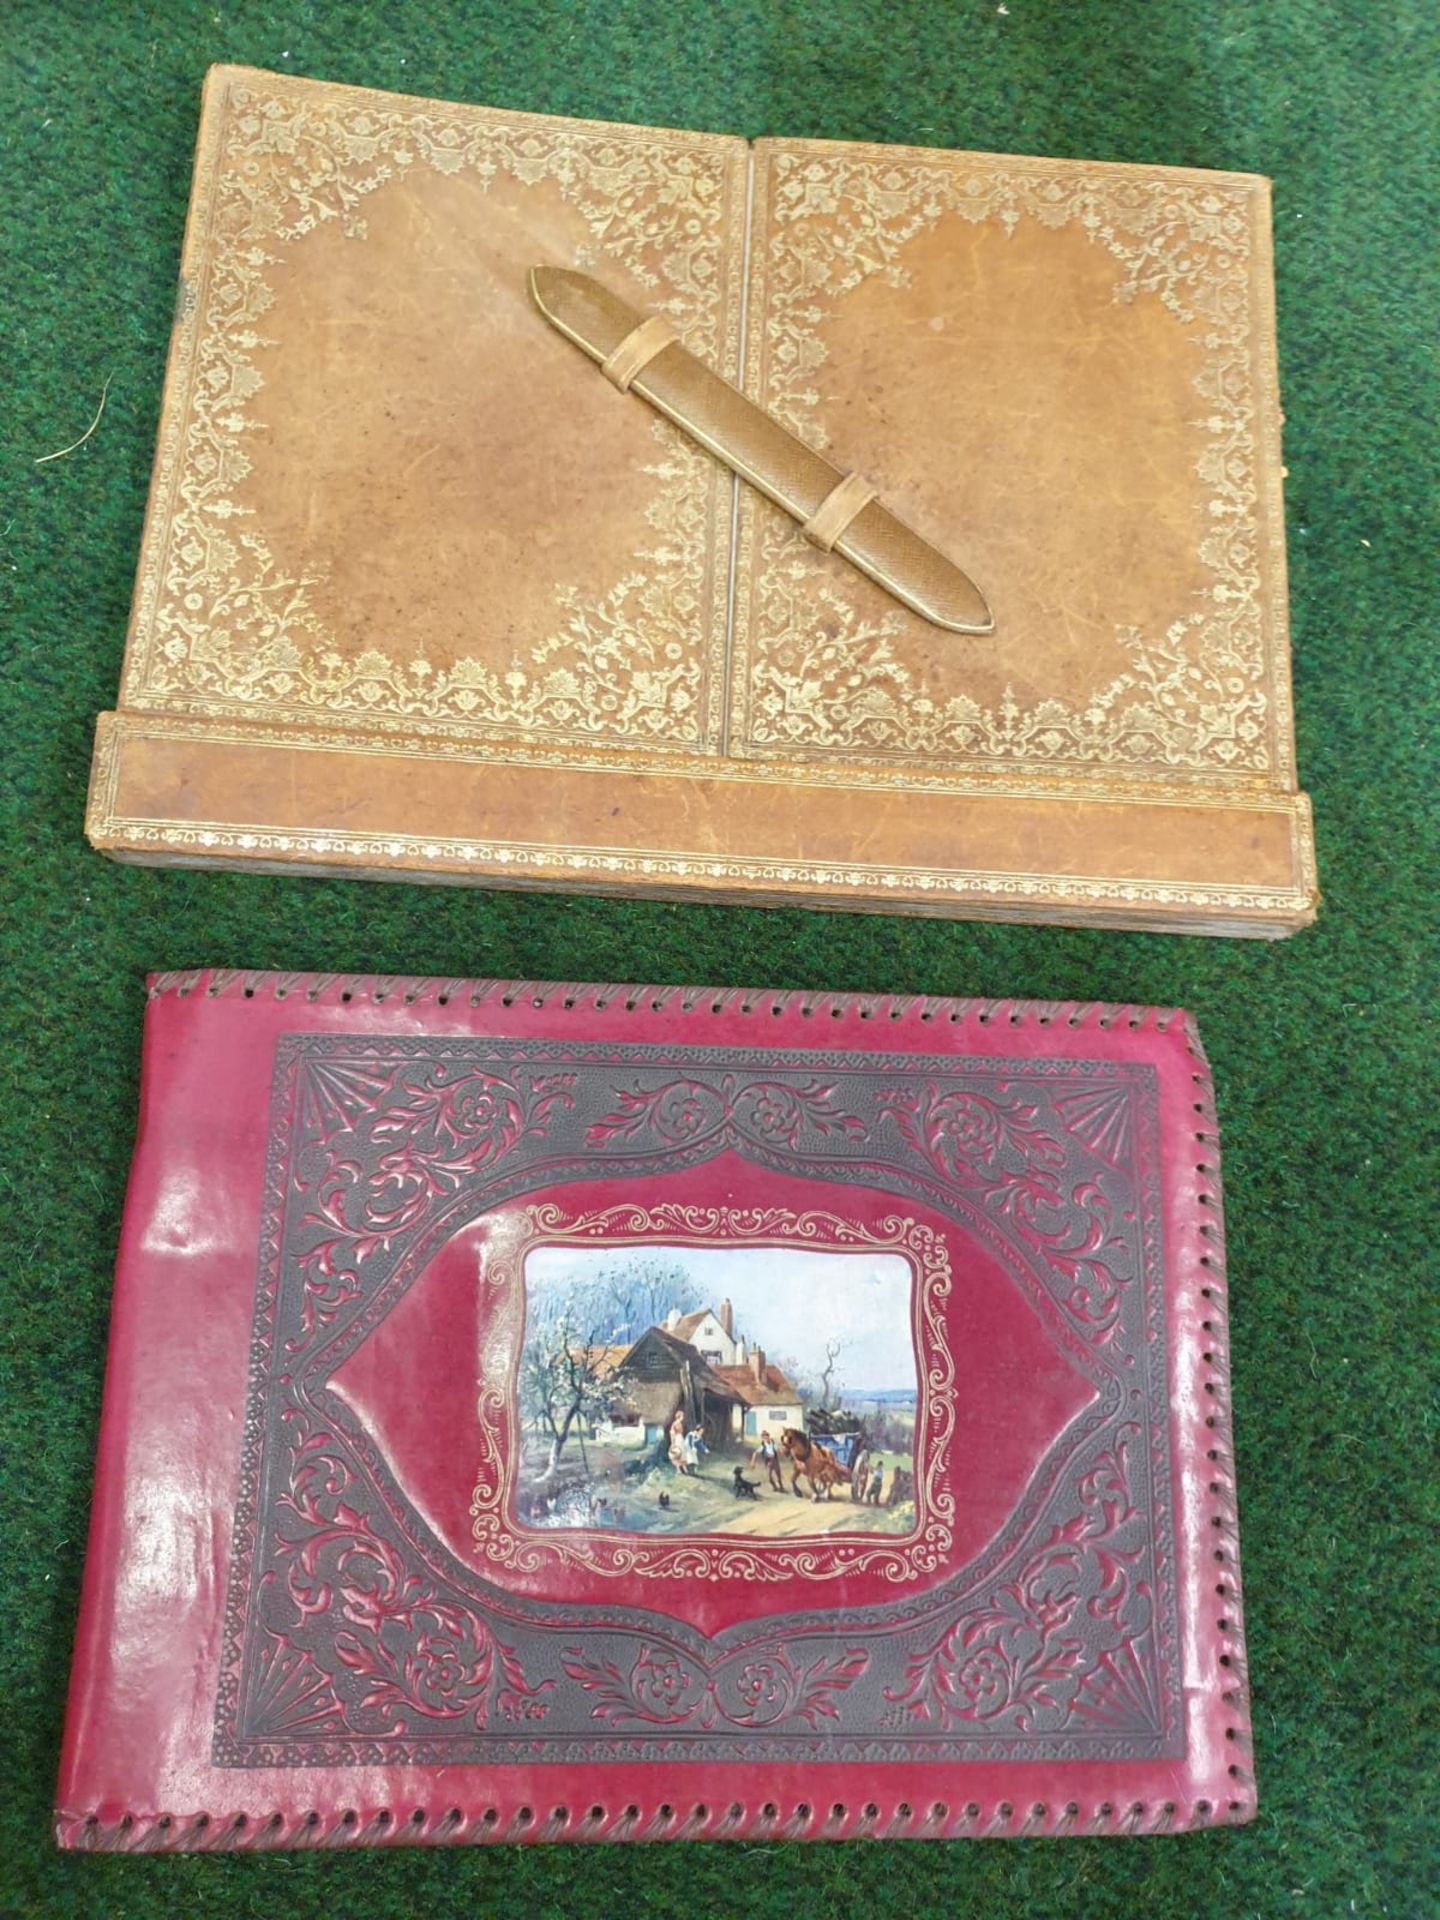 A vintage red leather with picture inset photo album and a tan light brown leather writing pad